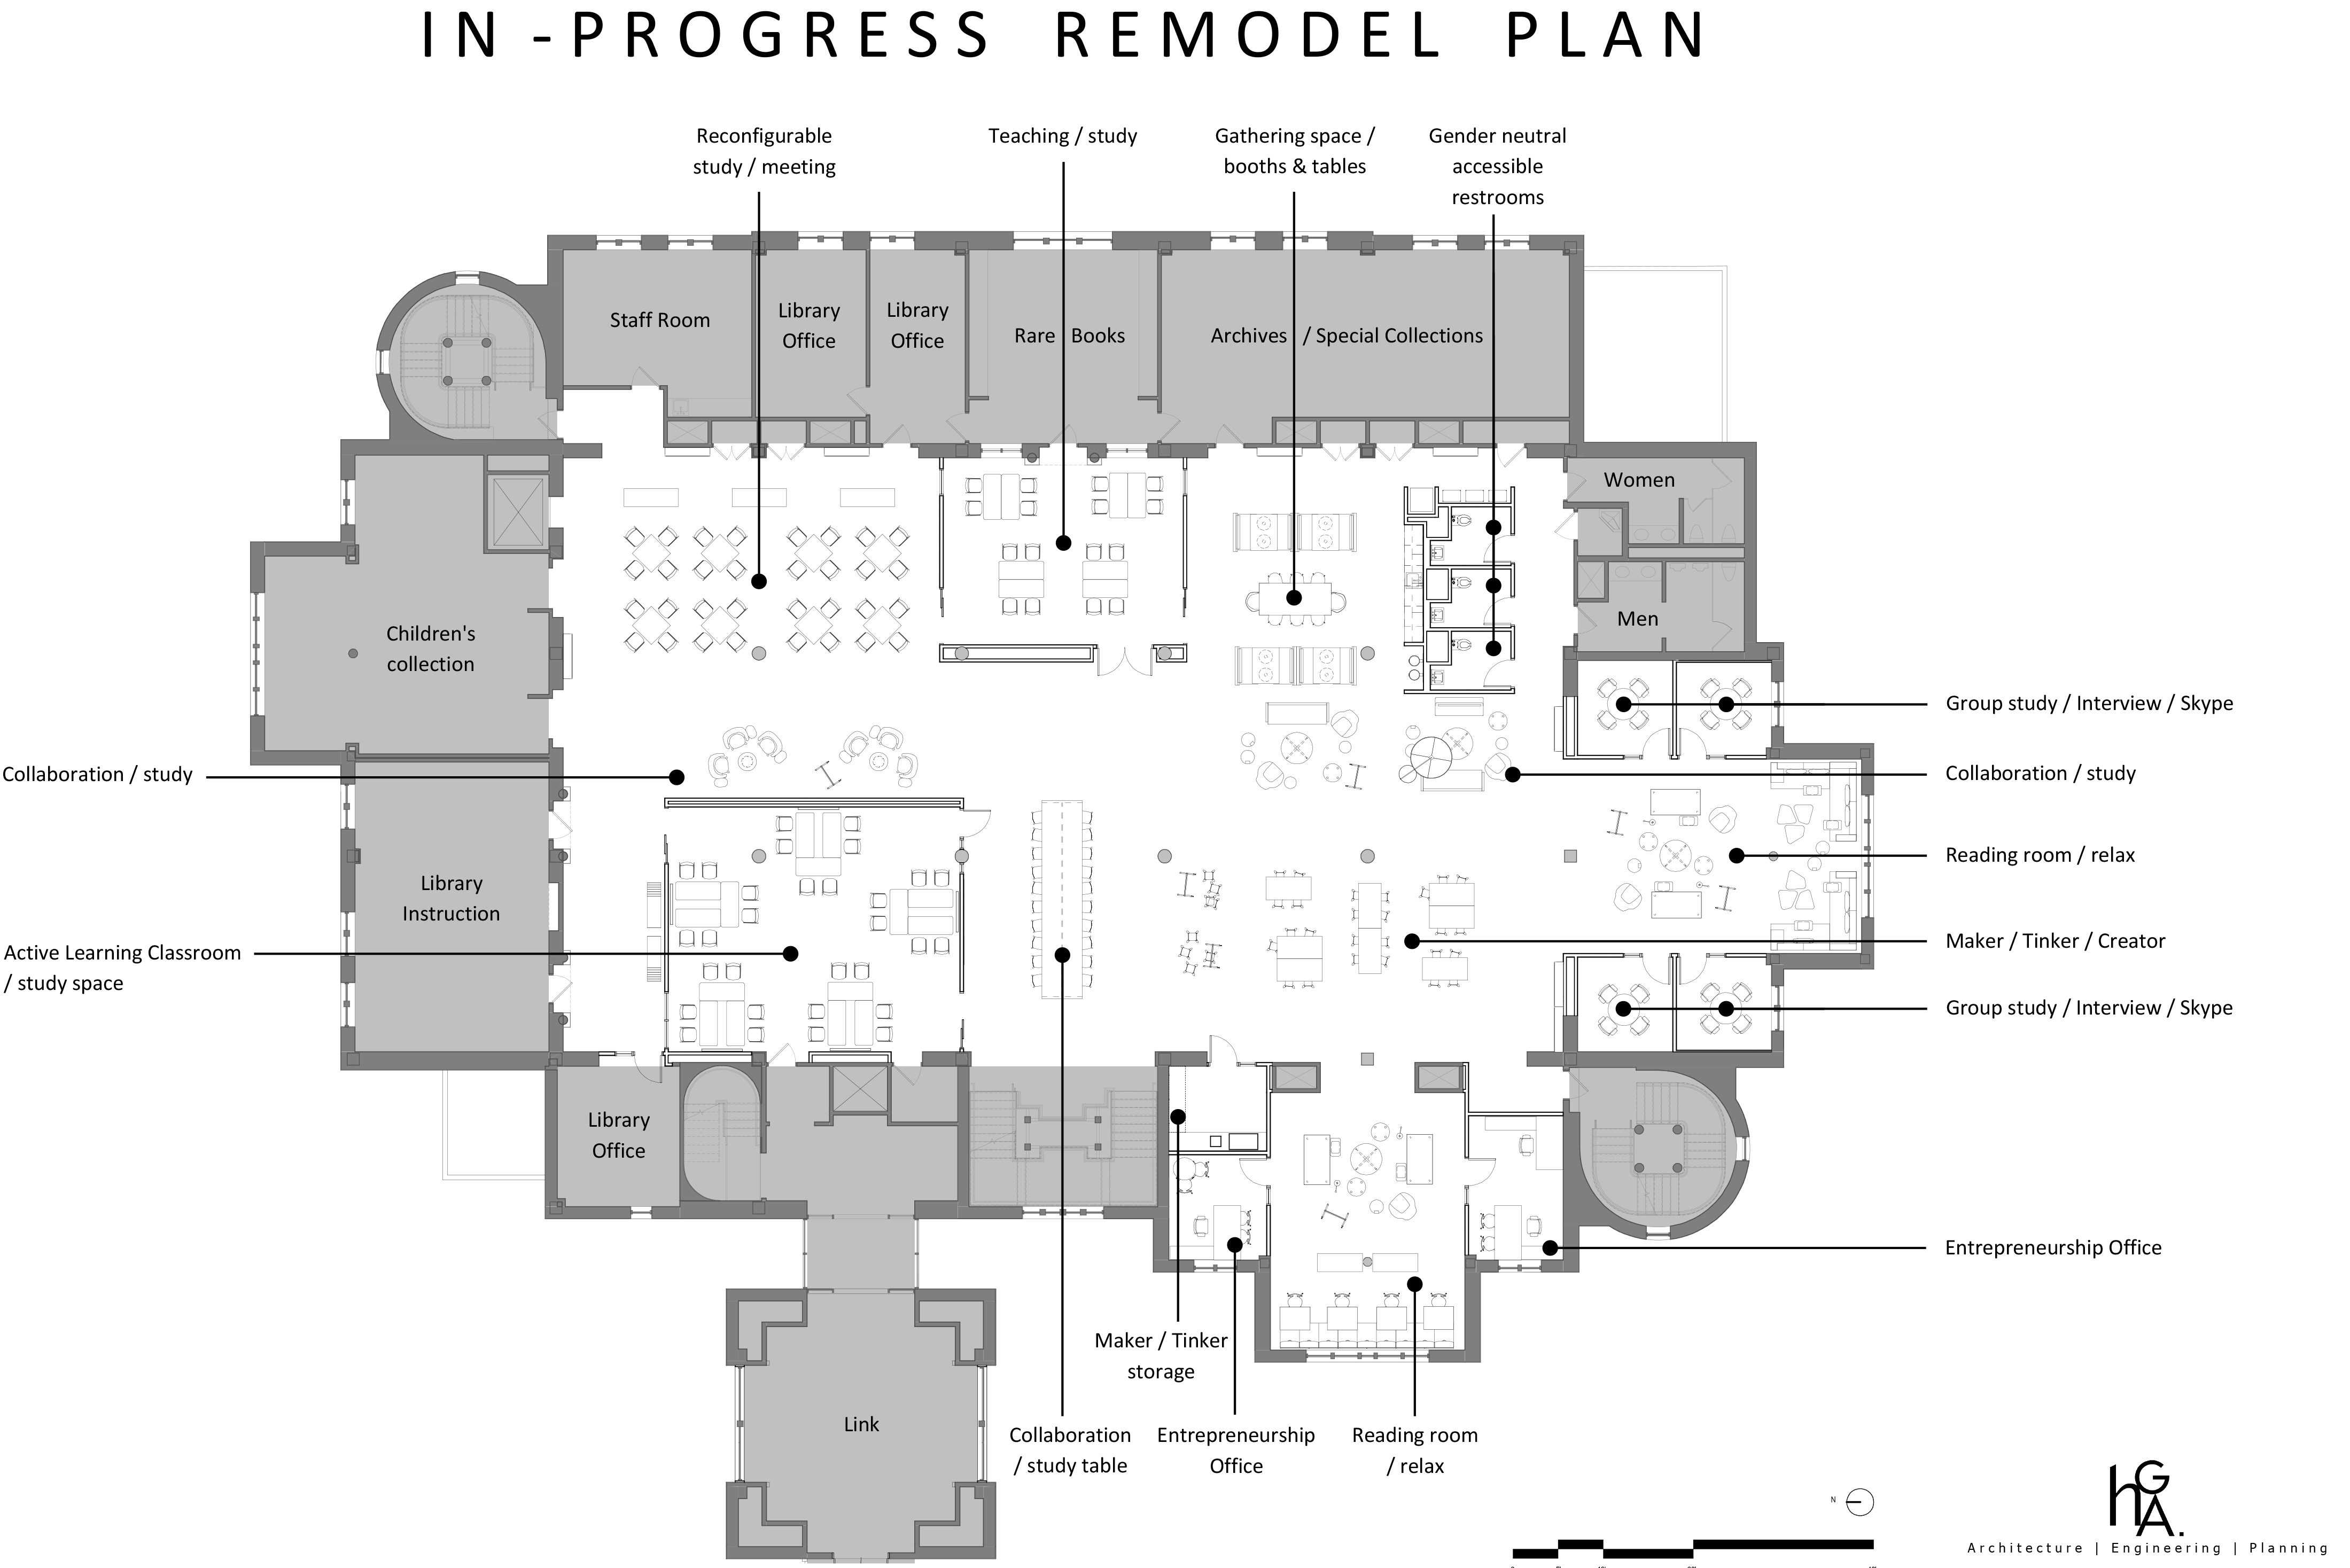 Preliminary floor plans for the second floor renovations include a maker space, a coffee bar and new offices for the entrepreneurship program. Existing reading rooms will be untouched or re-configured and new study space added. Grey sections along the periphery represent existing sections that will not be altered. Courtesy of David Wheaton.